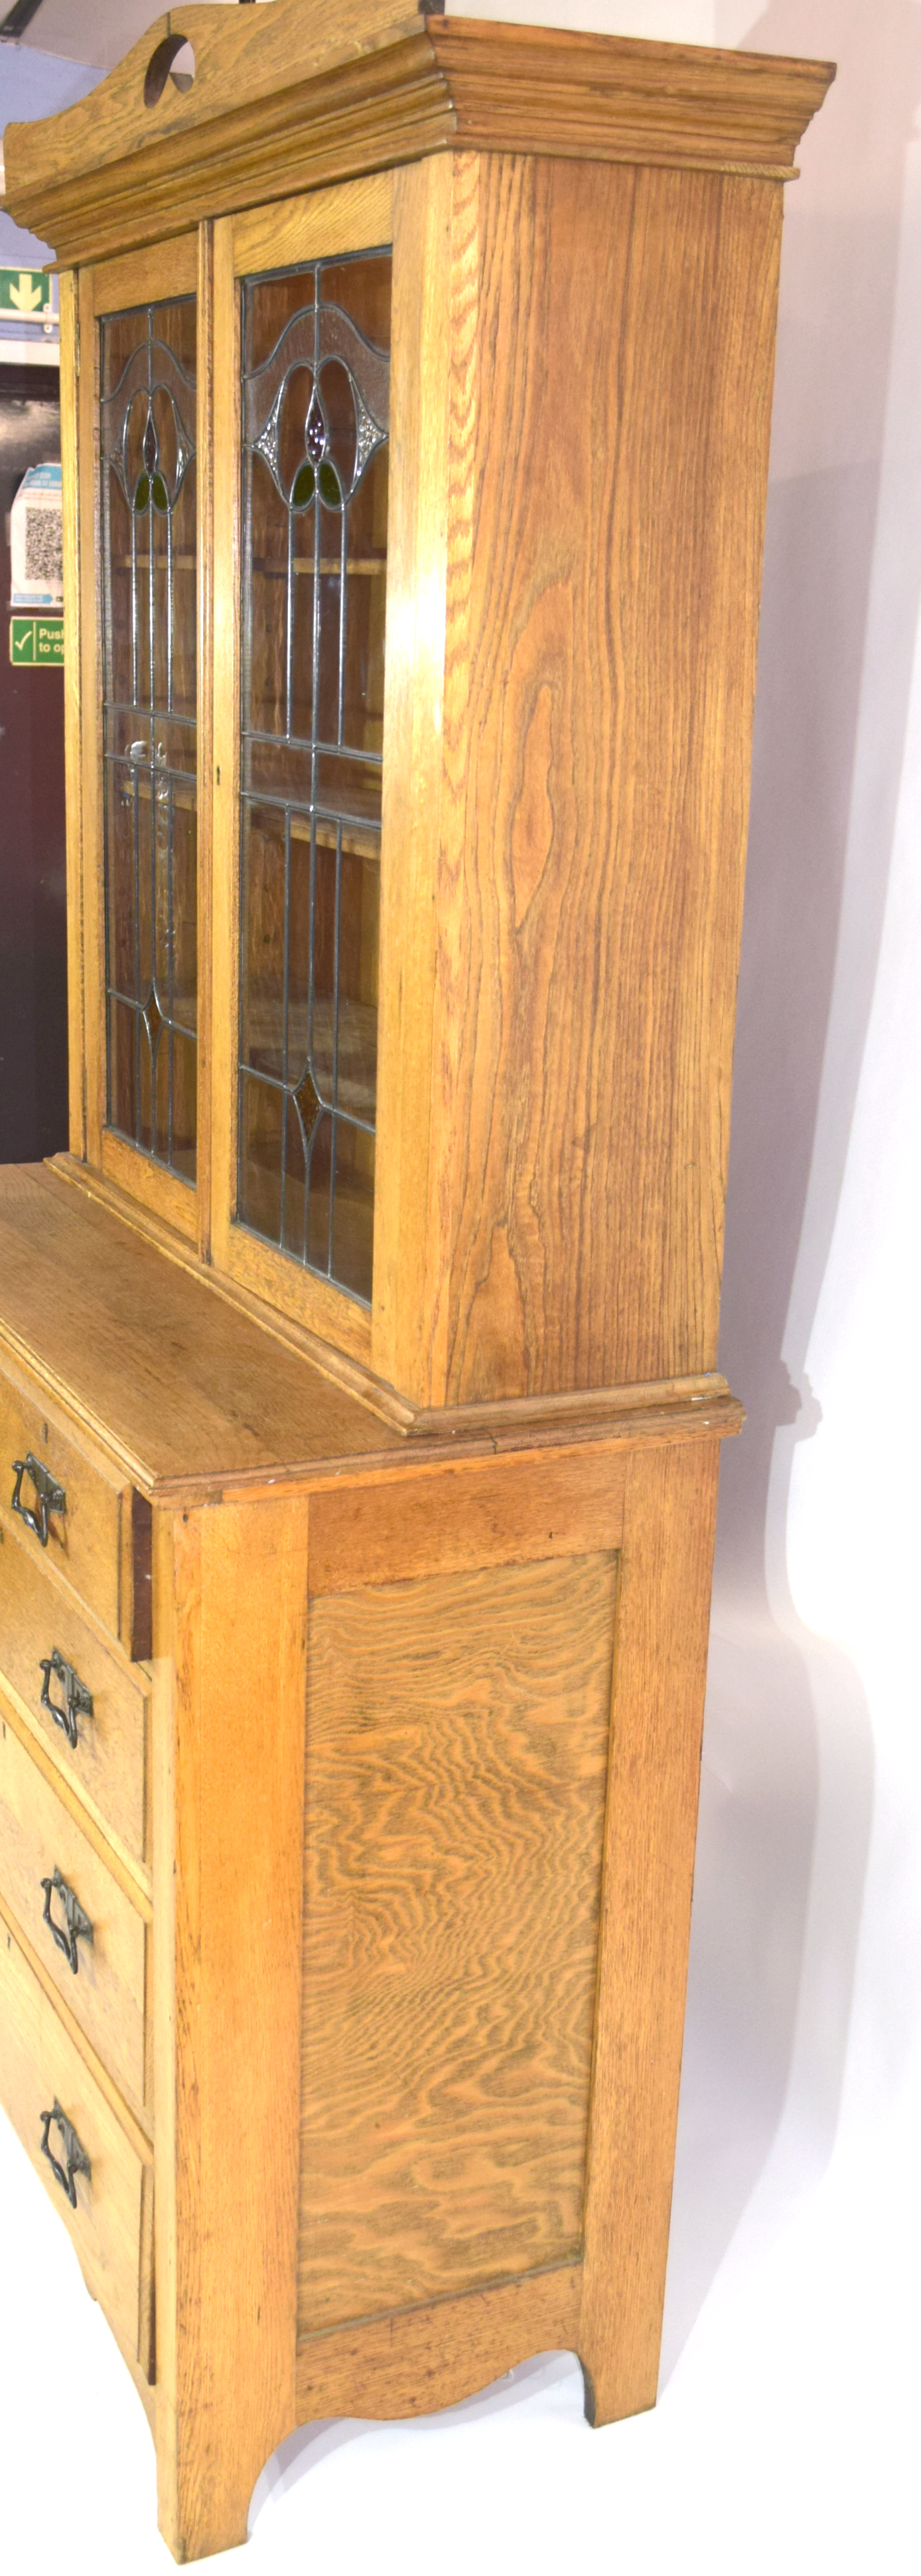 Late 19th century light oak two-piece cabinet, the top section with double glazed doors with Art - Image 5 of 7